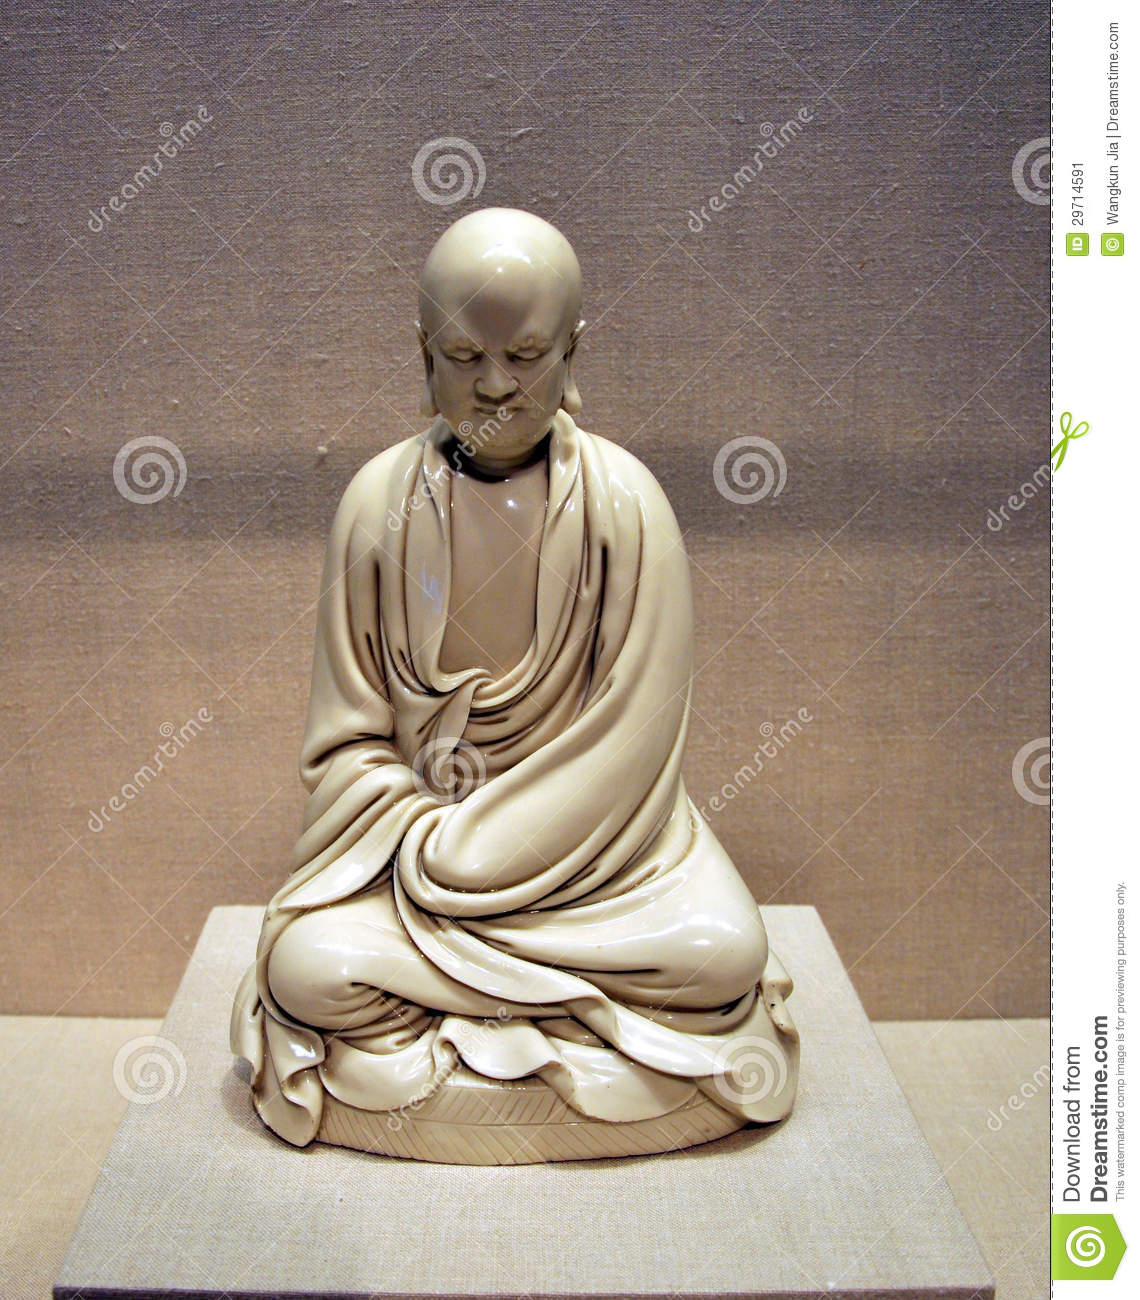 rel 133 zen buddhism Week 3 rel/133 buddhism worksheet and paper by choosing a particular school of buddhism to explore more fully, you will learn about the diversity within the tradition and how it is practiced today.